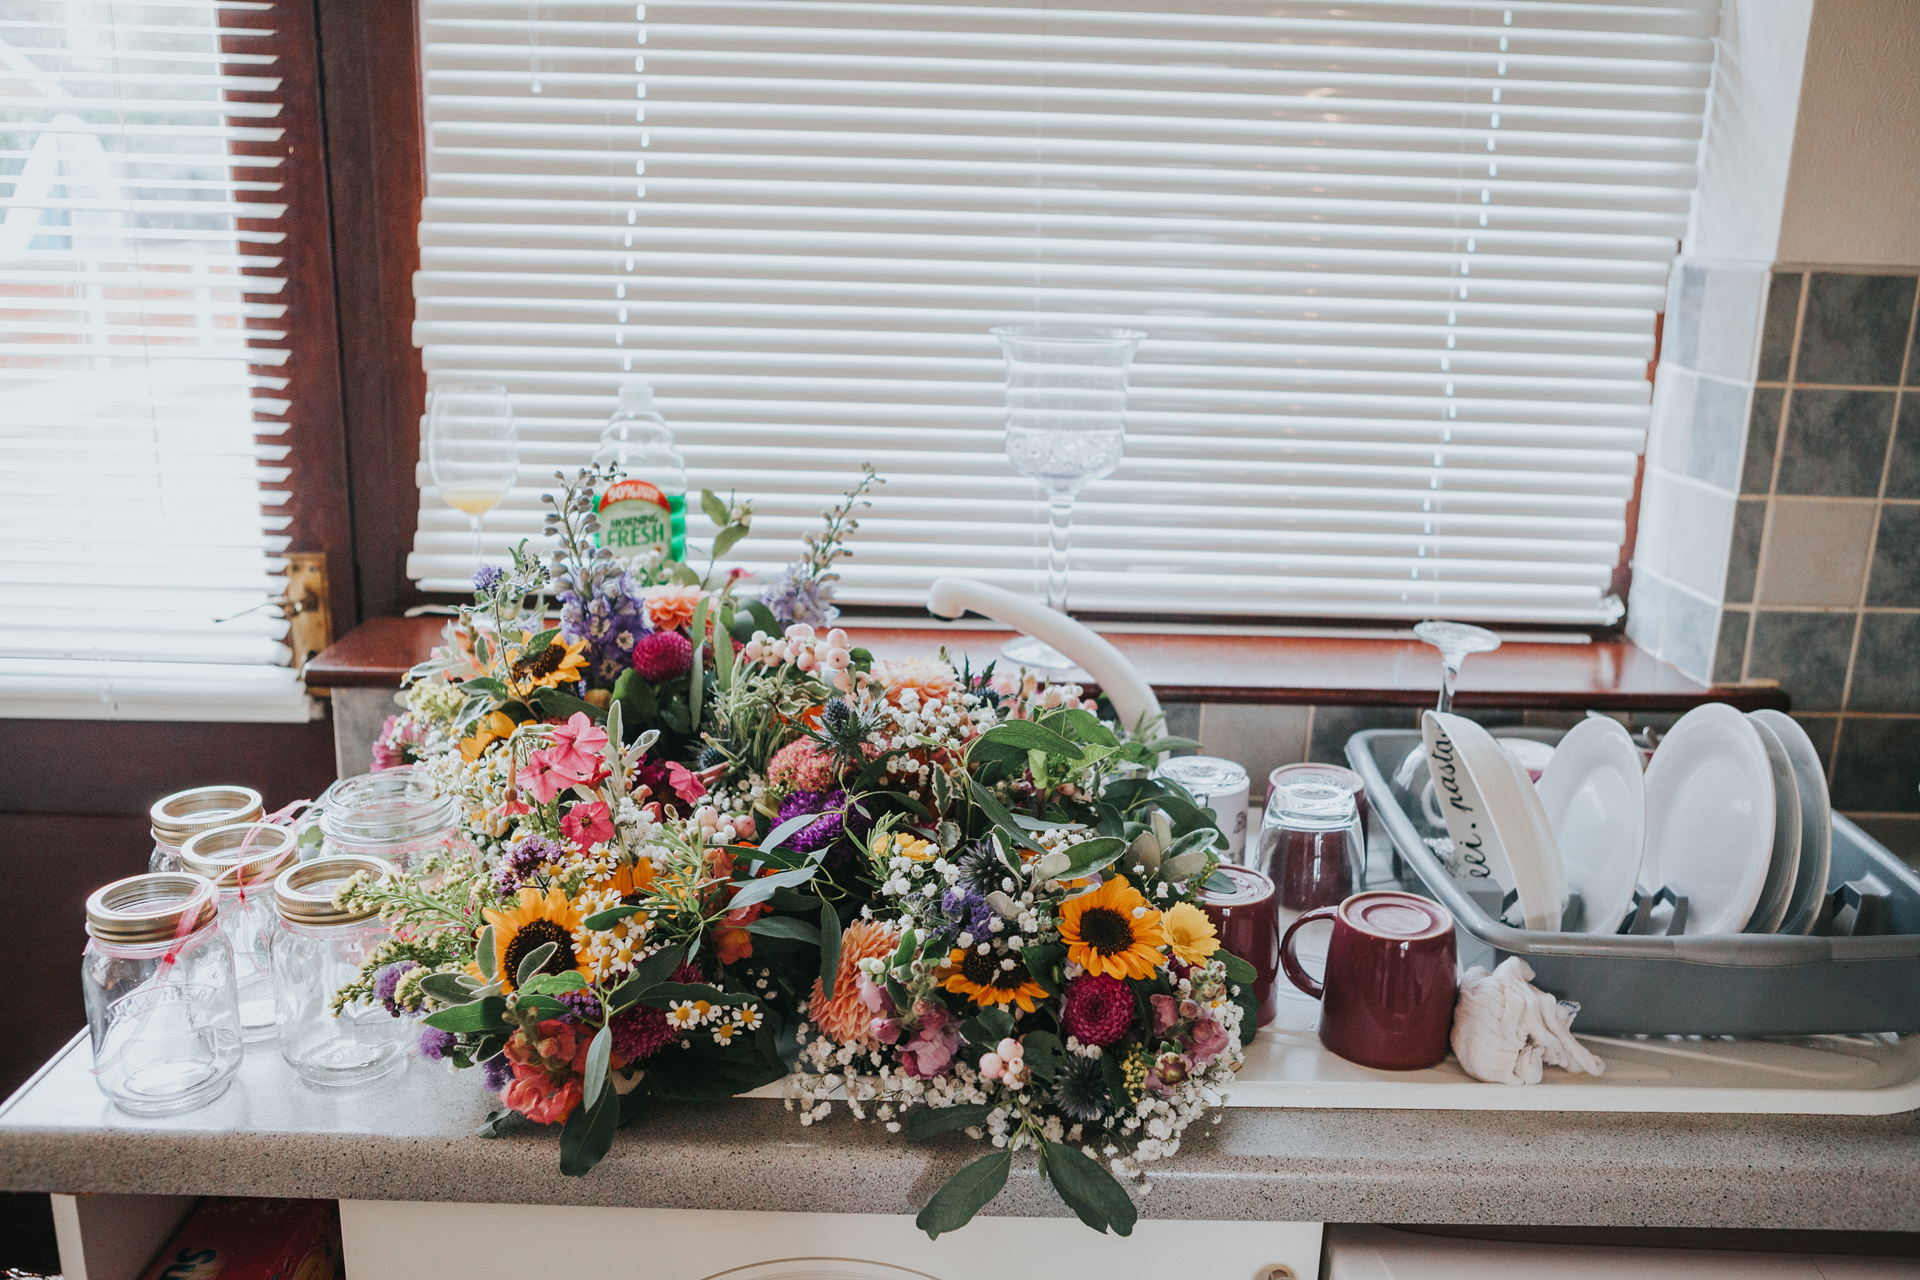 Flowers standing in the sink next to the drying dishes.